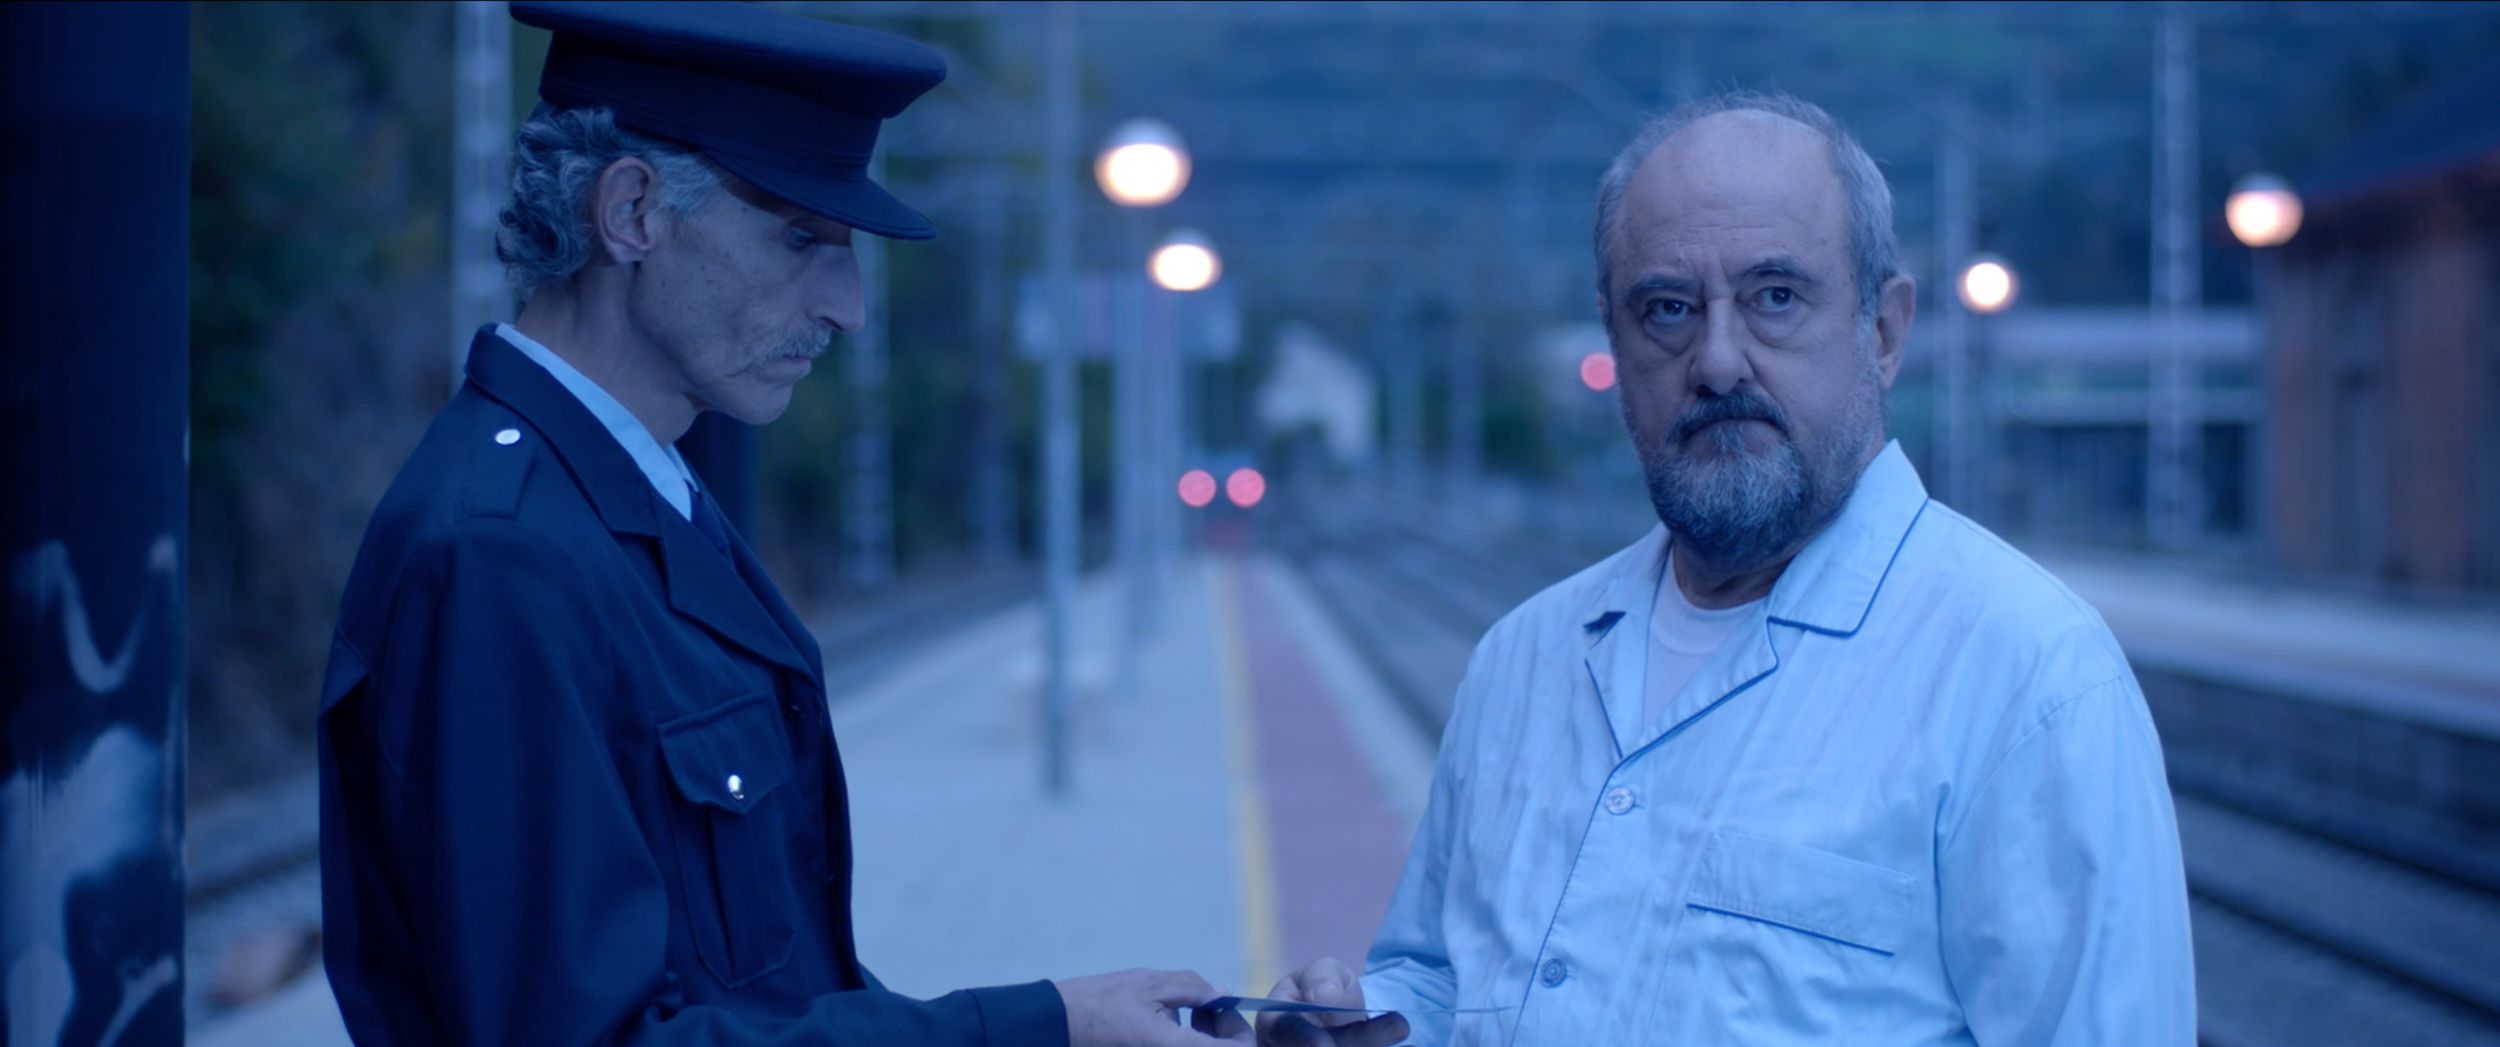 Still from La Estación, official selection for College Narrative.